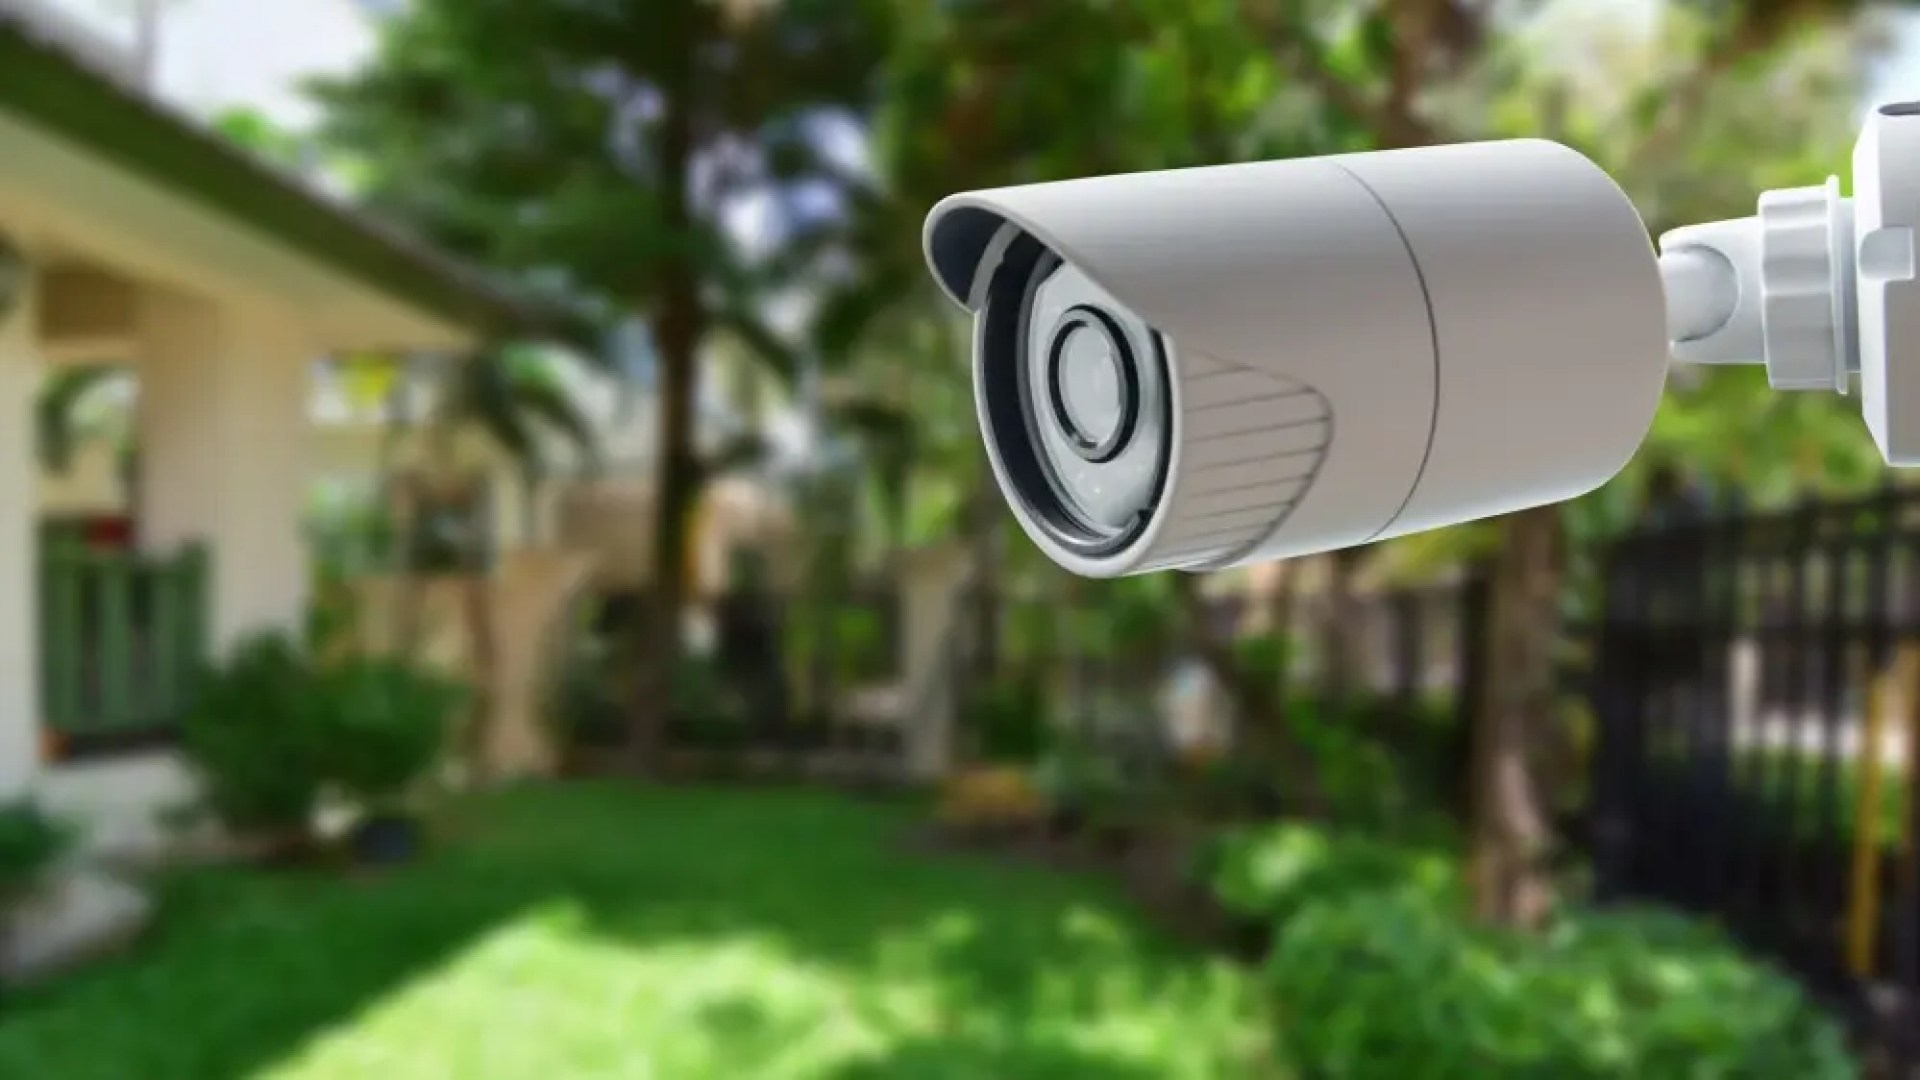 A security camera mounted outside overlooking a backyard